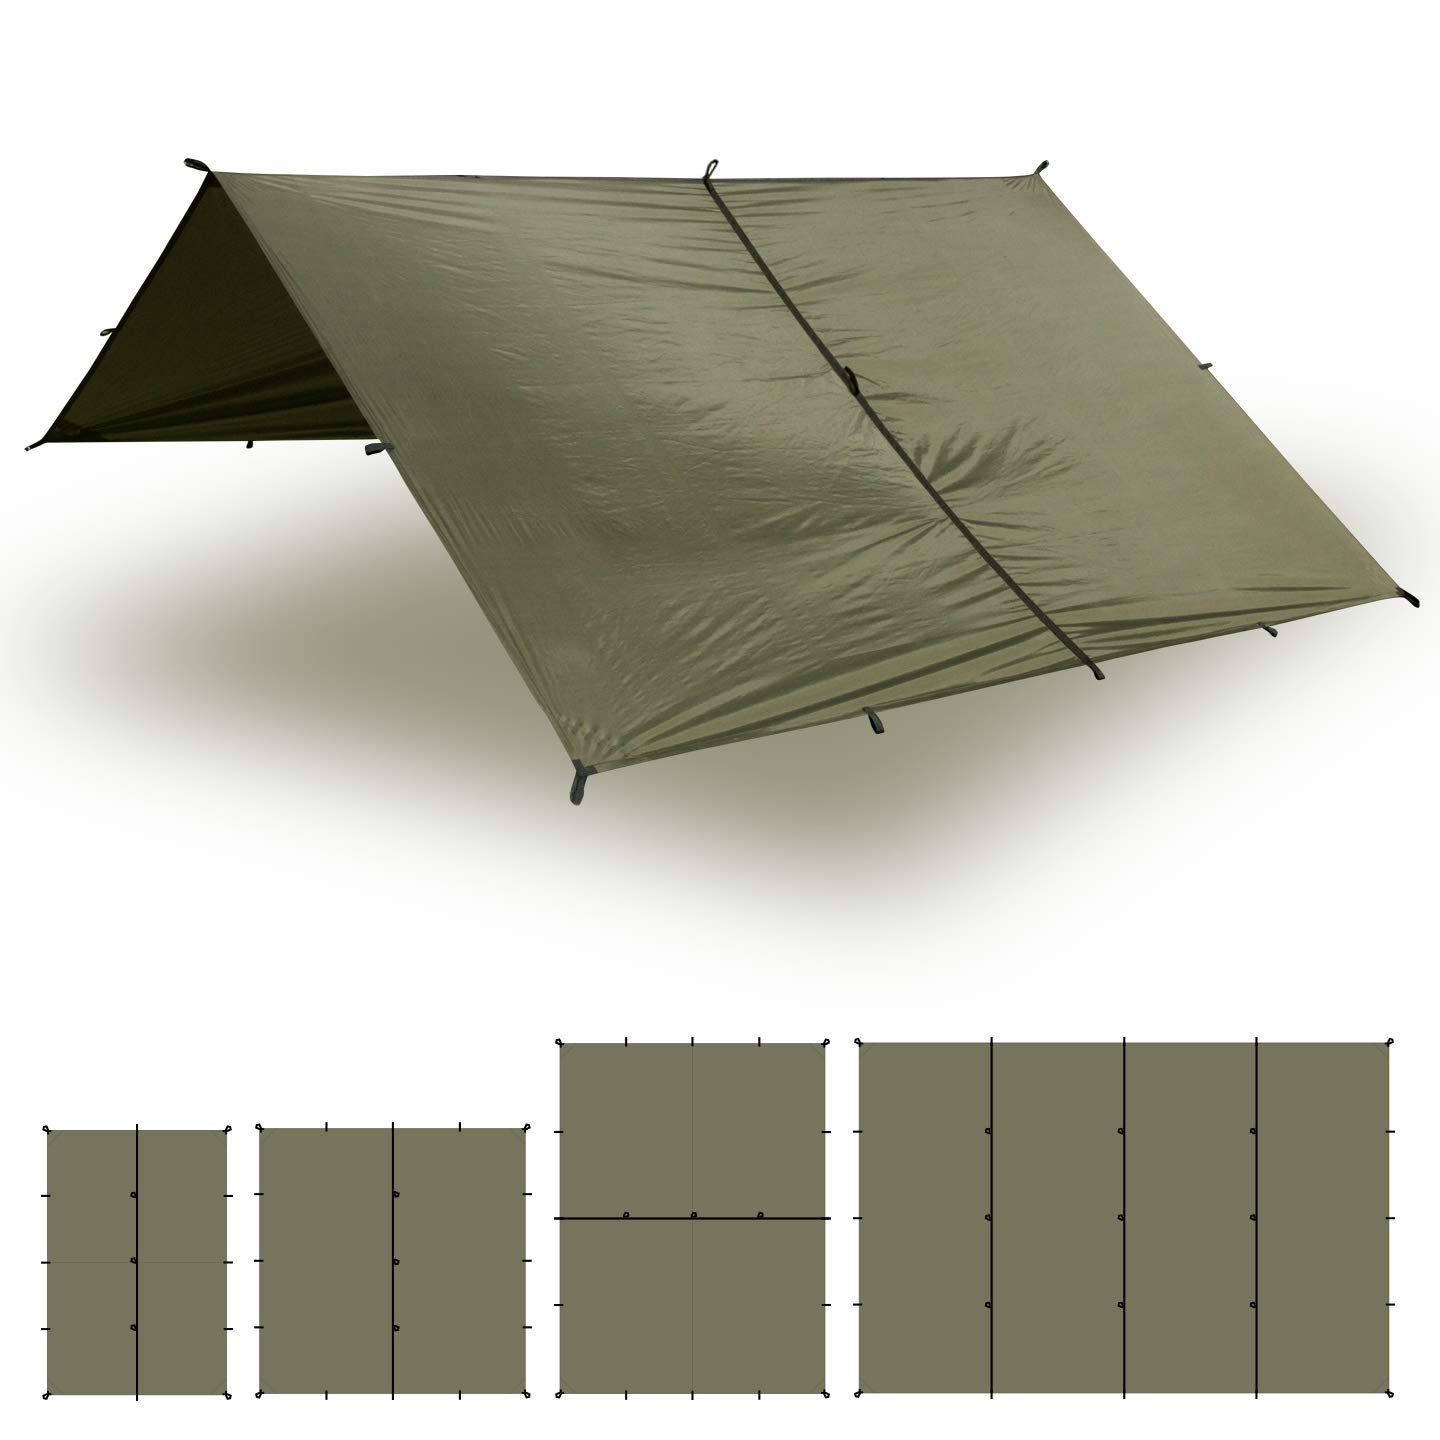 Aqua Quest Safari Tarp - 100% Waterproof Lightweight Silicone Bushcraft Camping Shelter - 10 x 7 Olive Drab by Aqua Quest